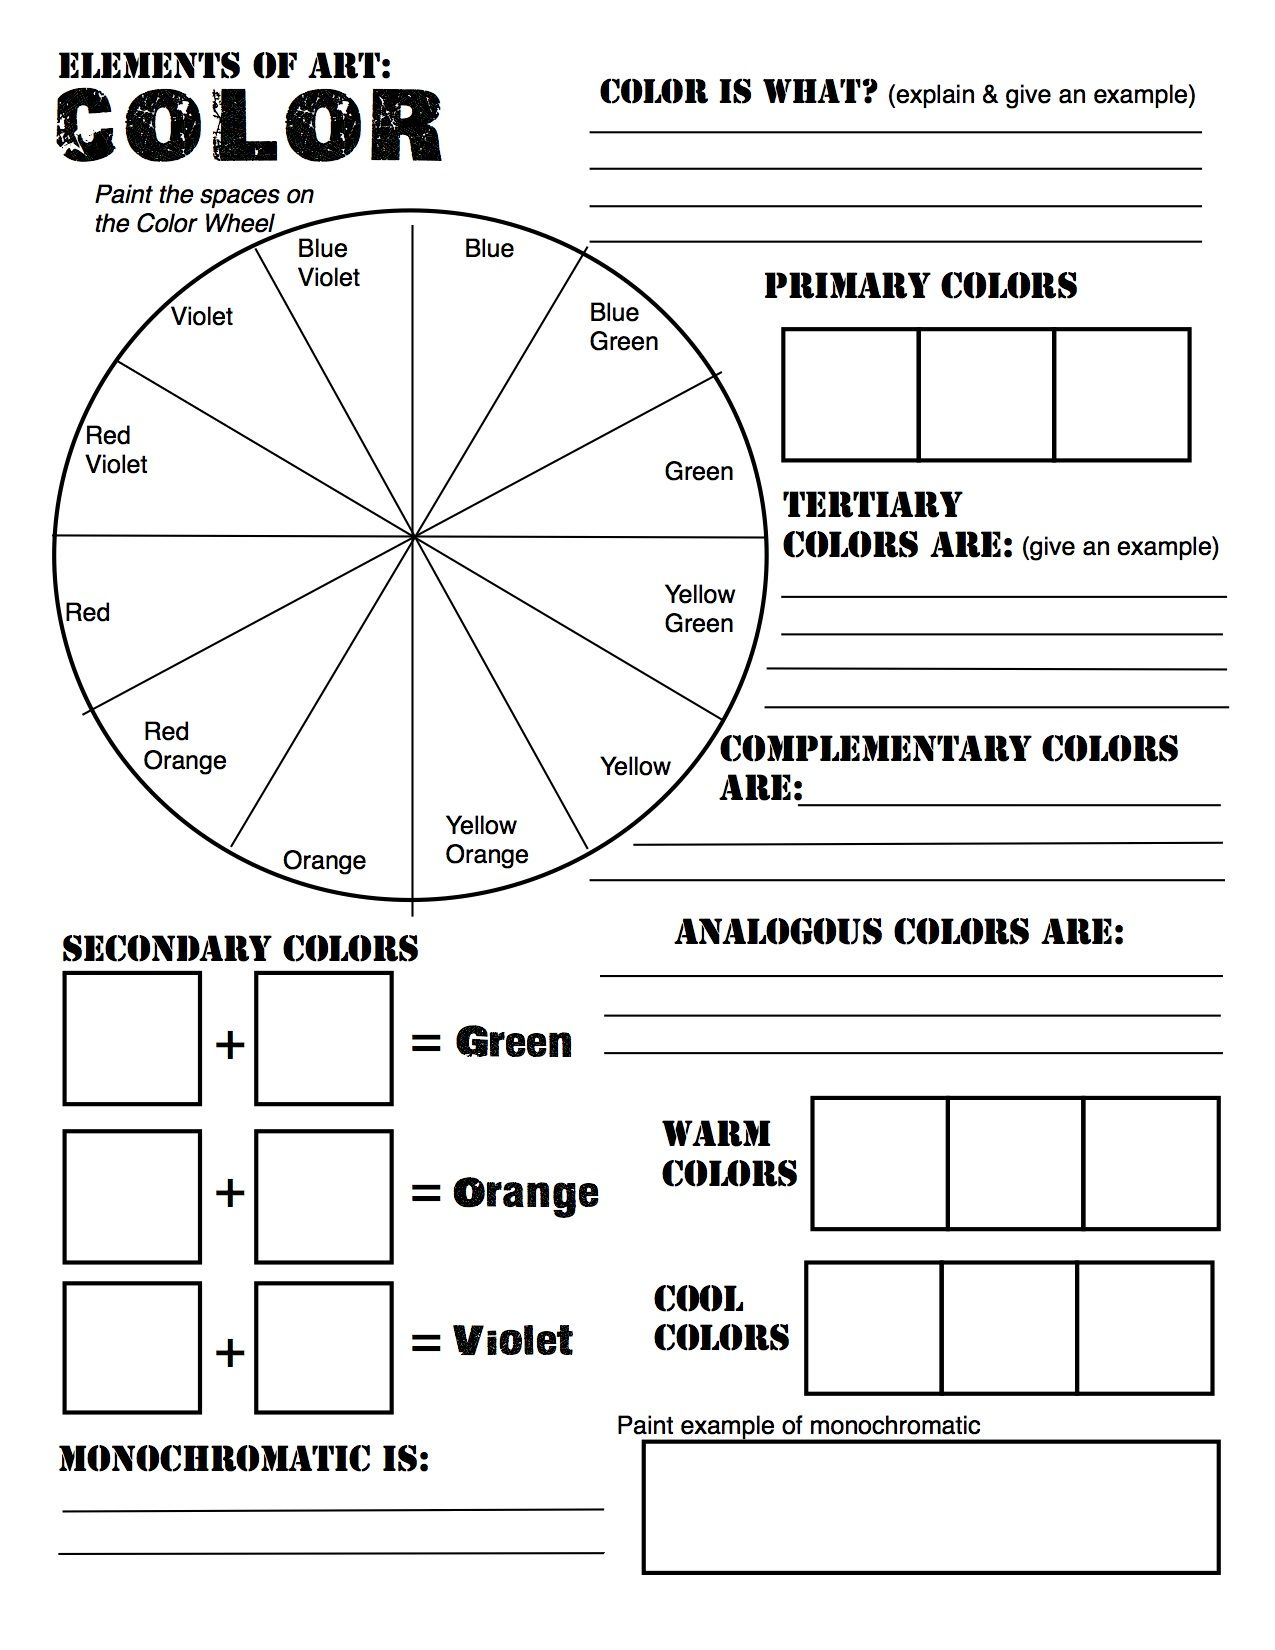 Color theory review sheet made for Studio in Art. Revised from  http://pinterest.com/pin/118782508893259117/   Art worksheets [ 1650 x 1275 Pixel ]